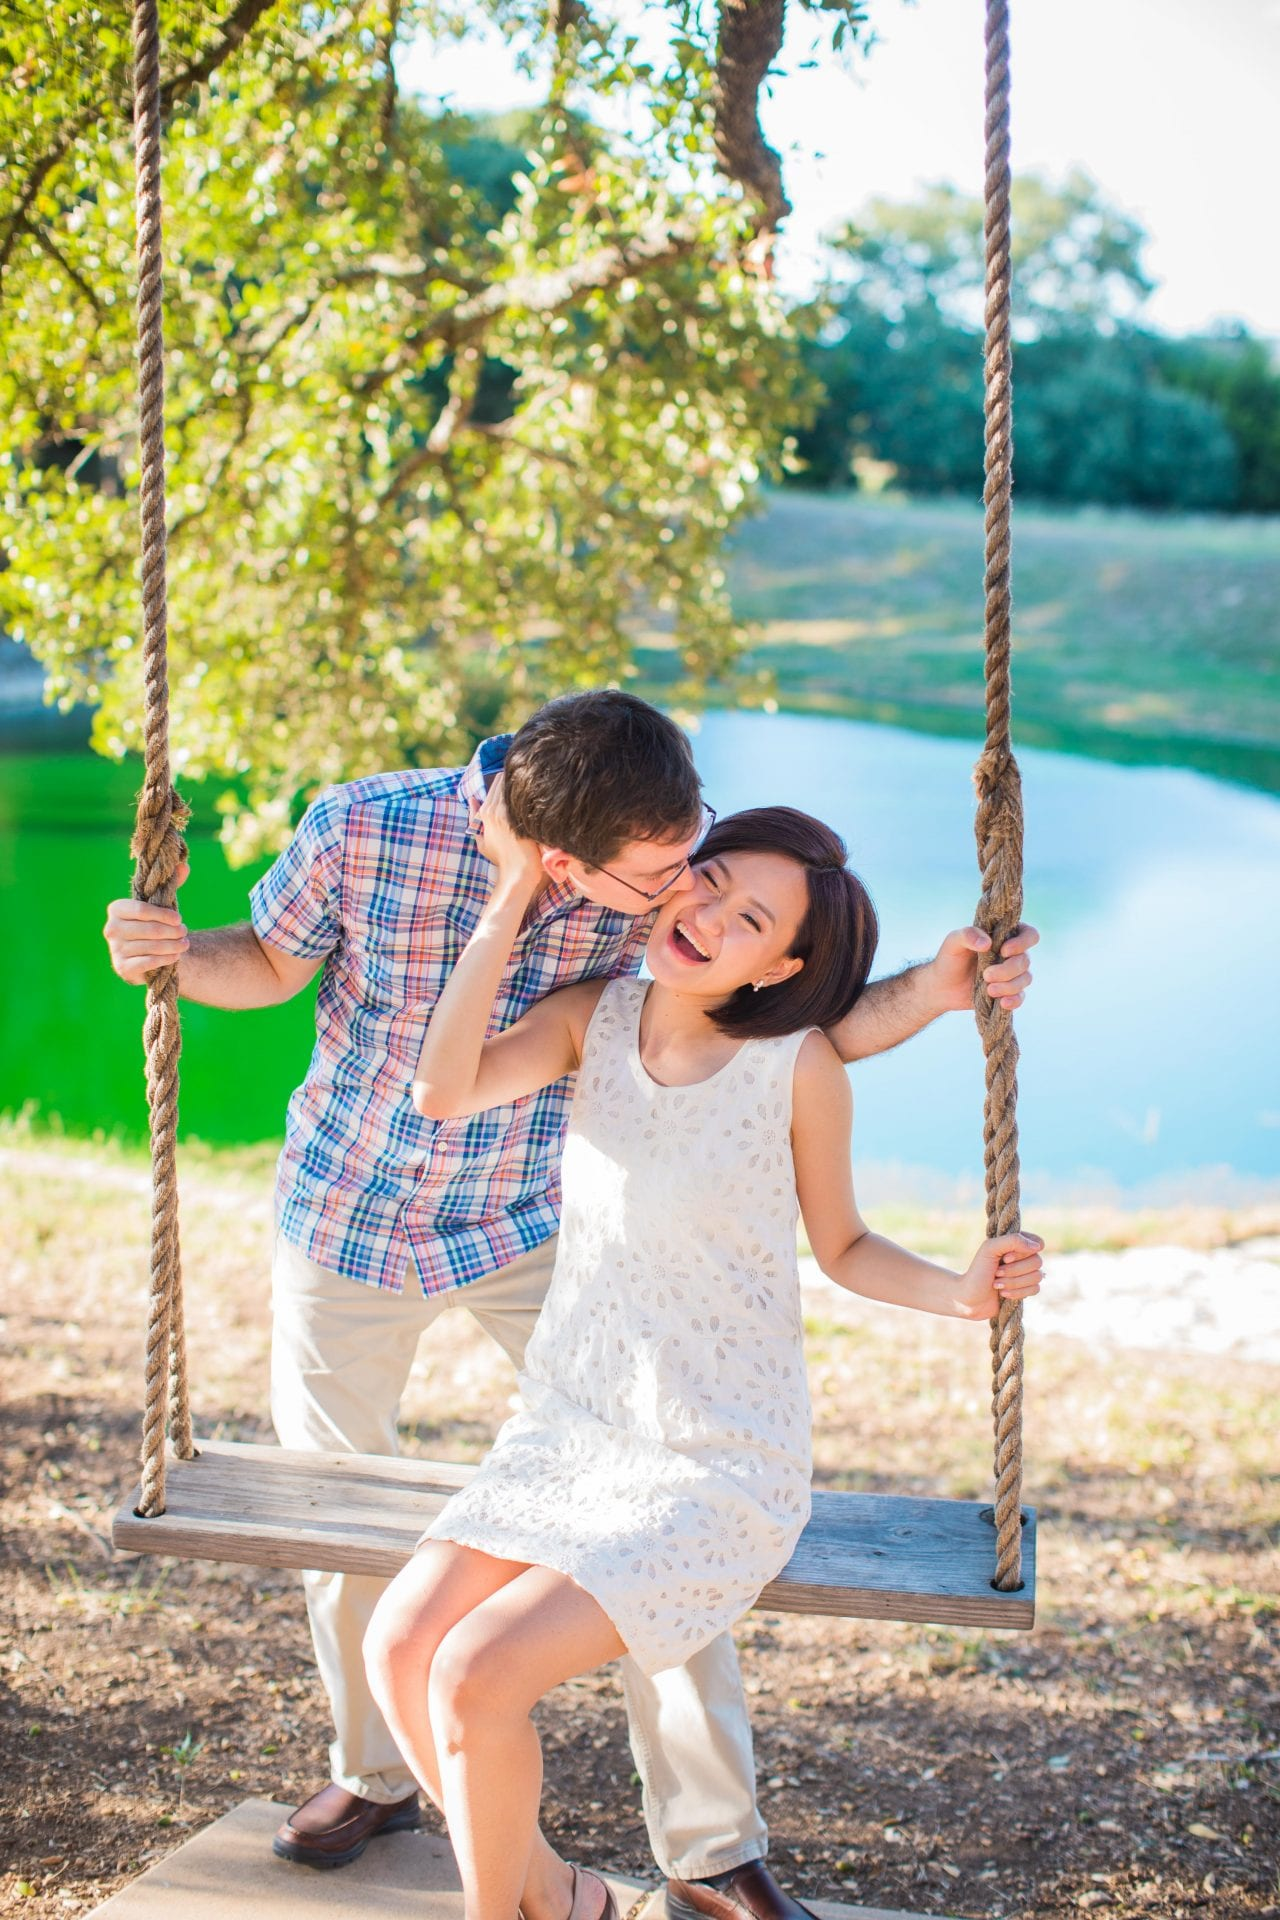 Josh and Tina engagement session at Kendall plantation sitting on swing